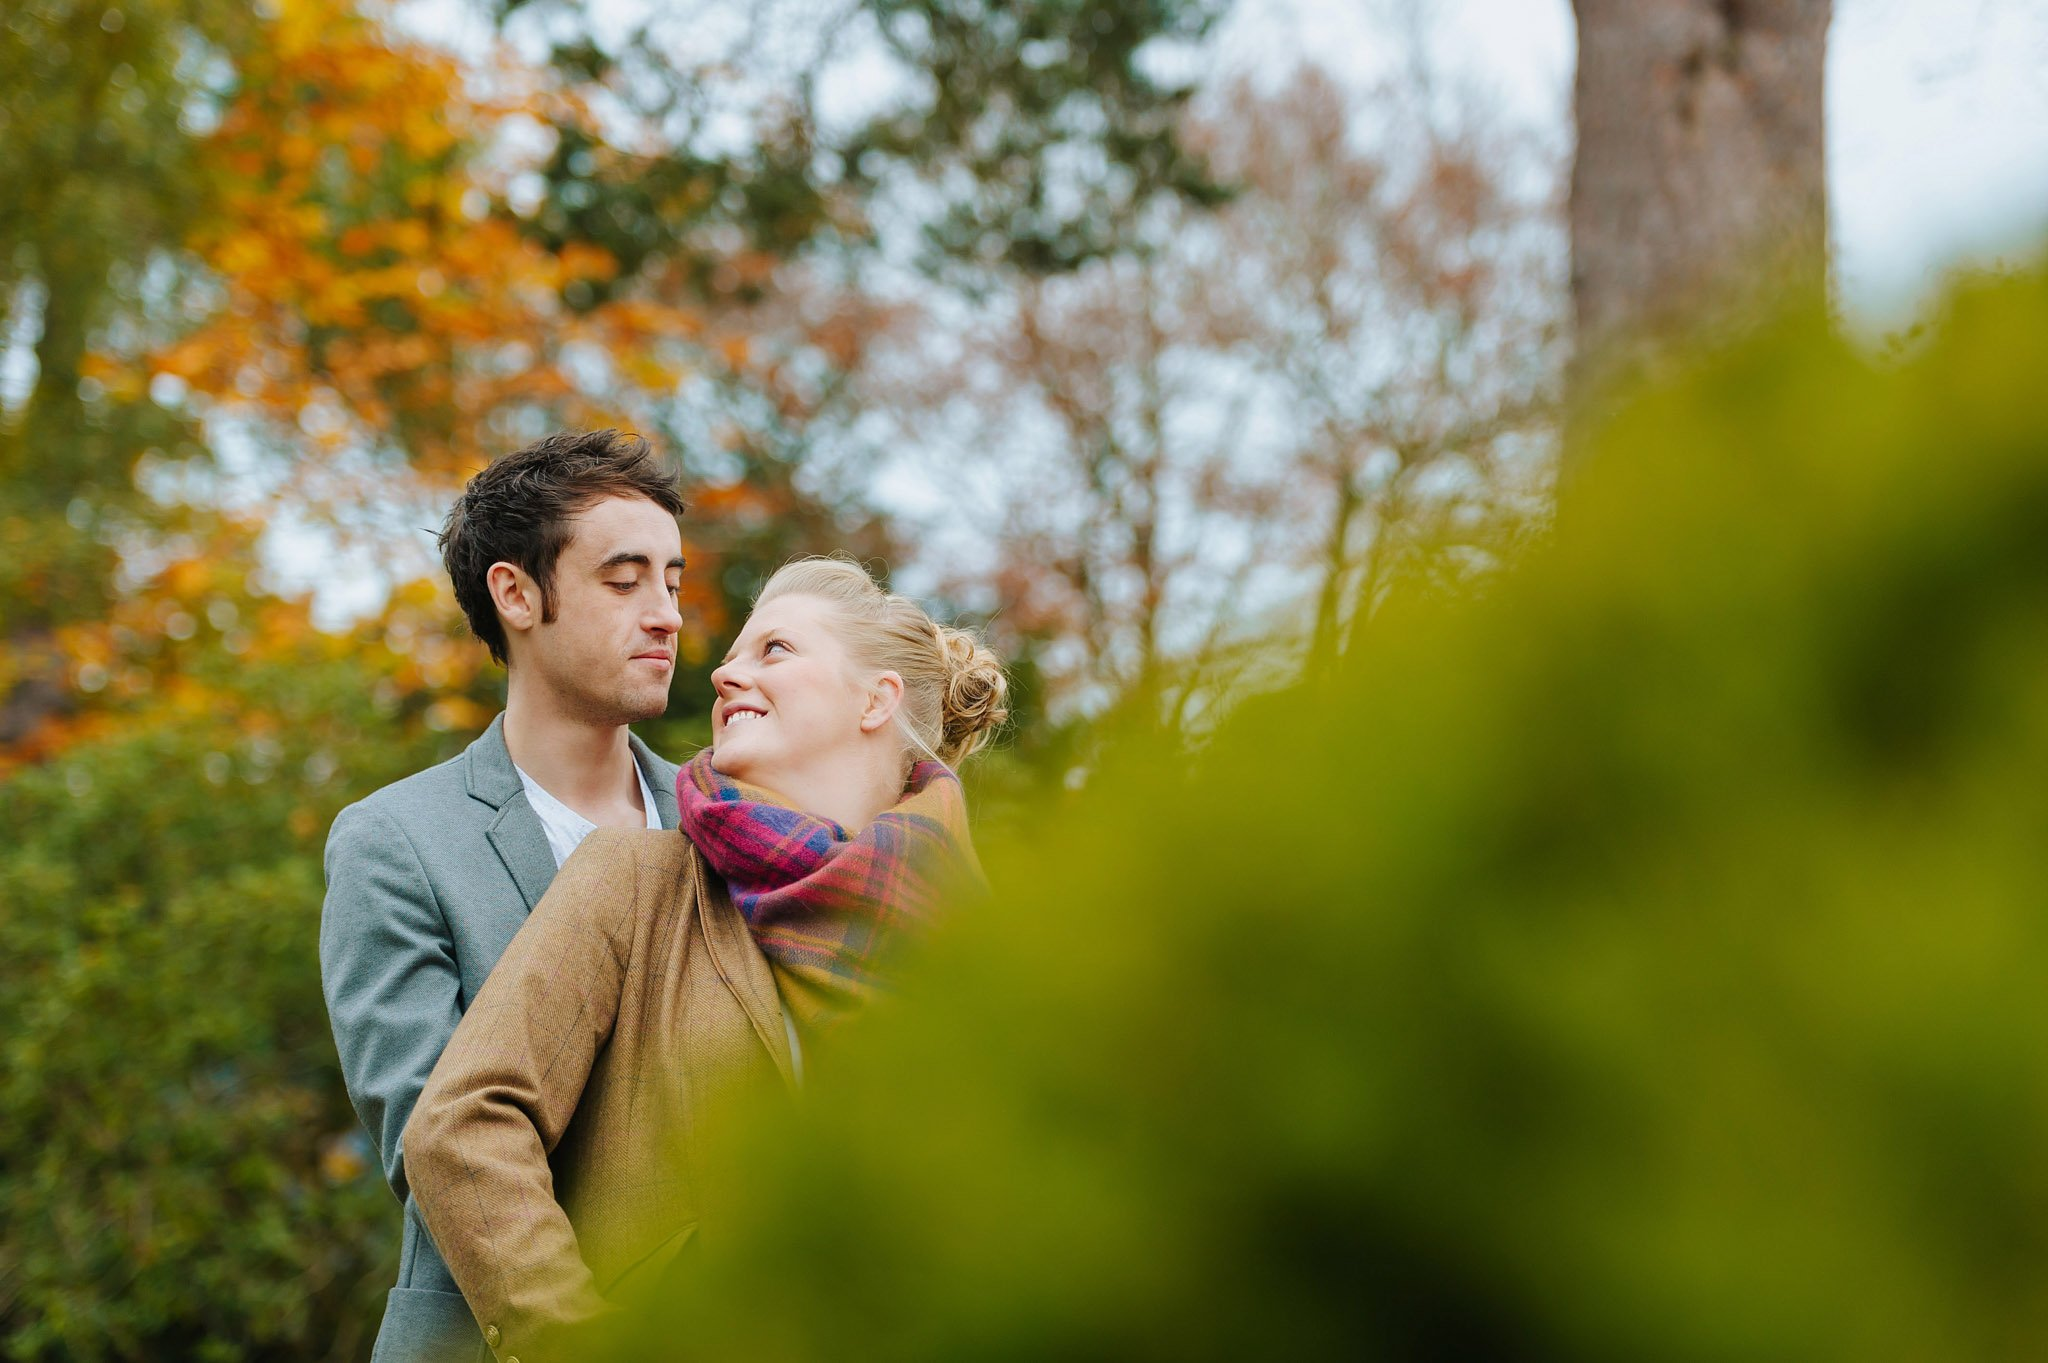 Becky + Marcus | Engagement session in Herefordshire 5